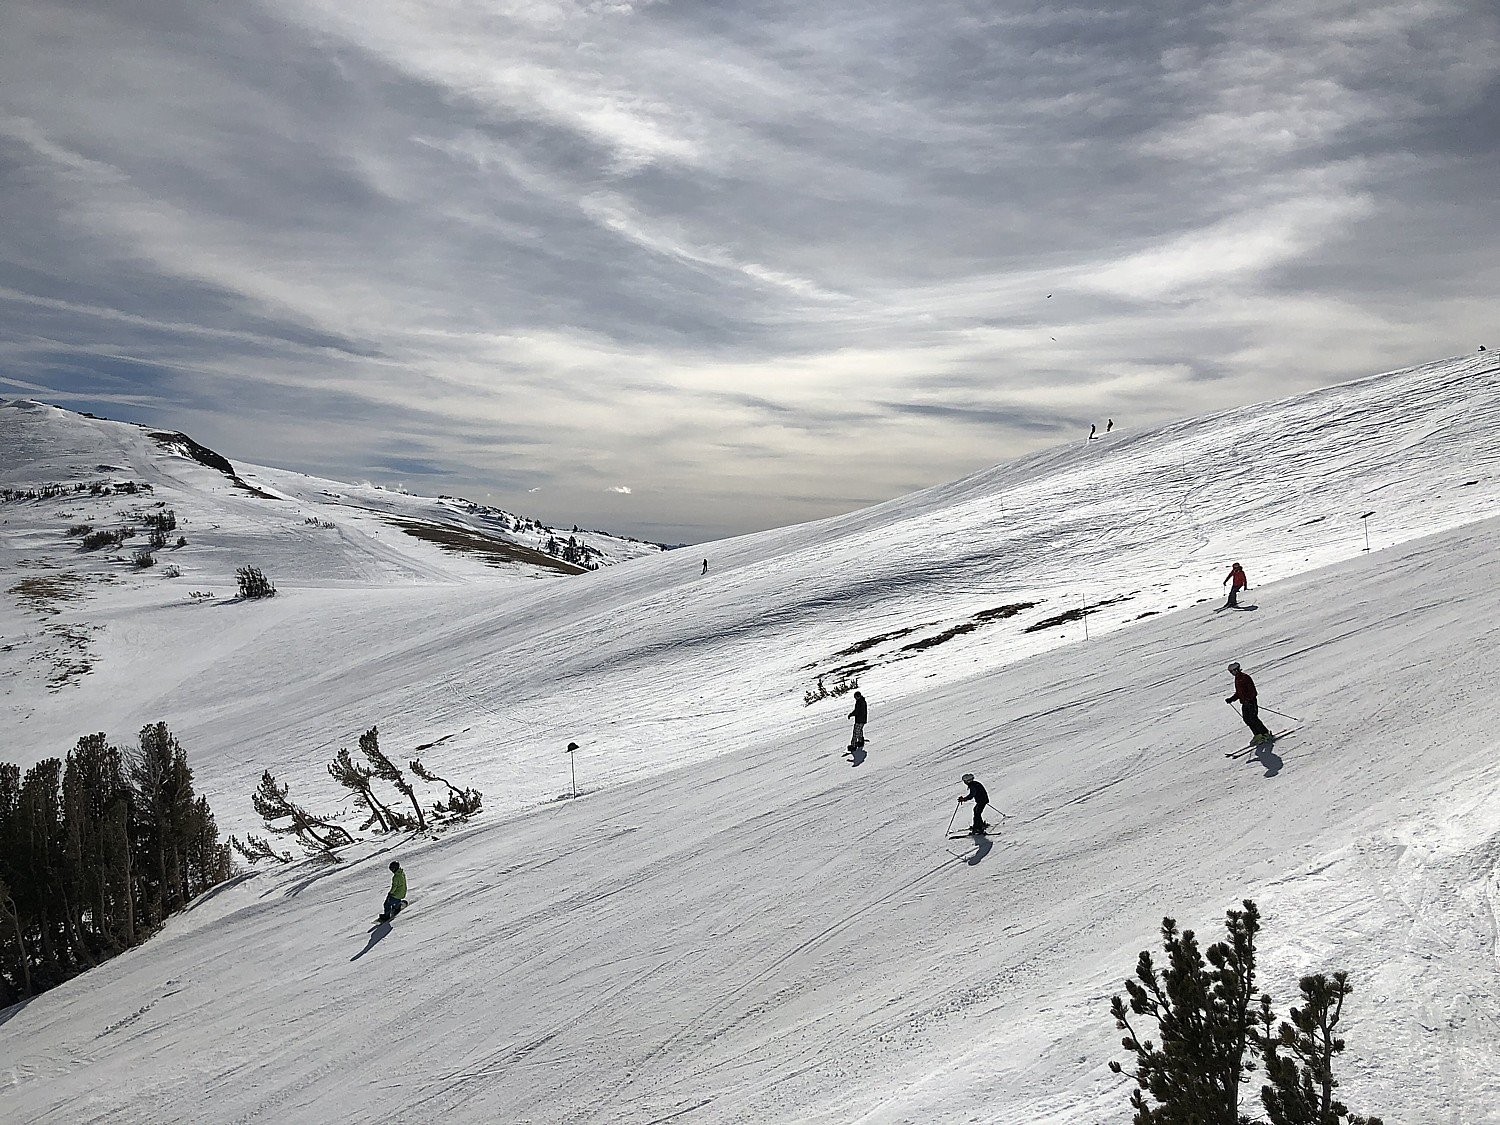 Skiing Kirkwood: It's All About the Mountain